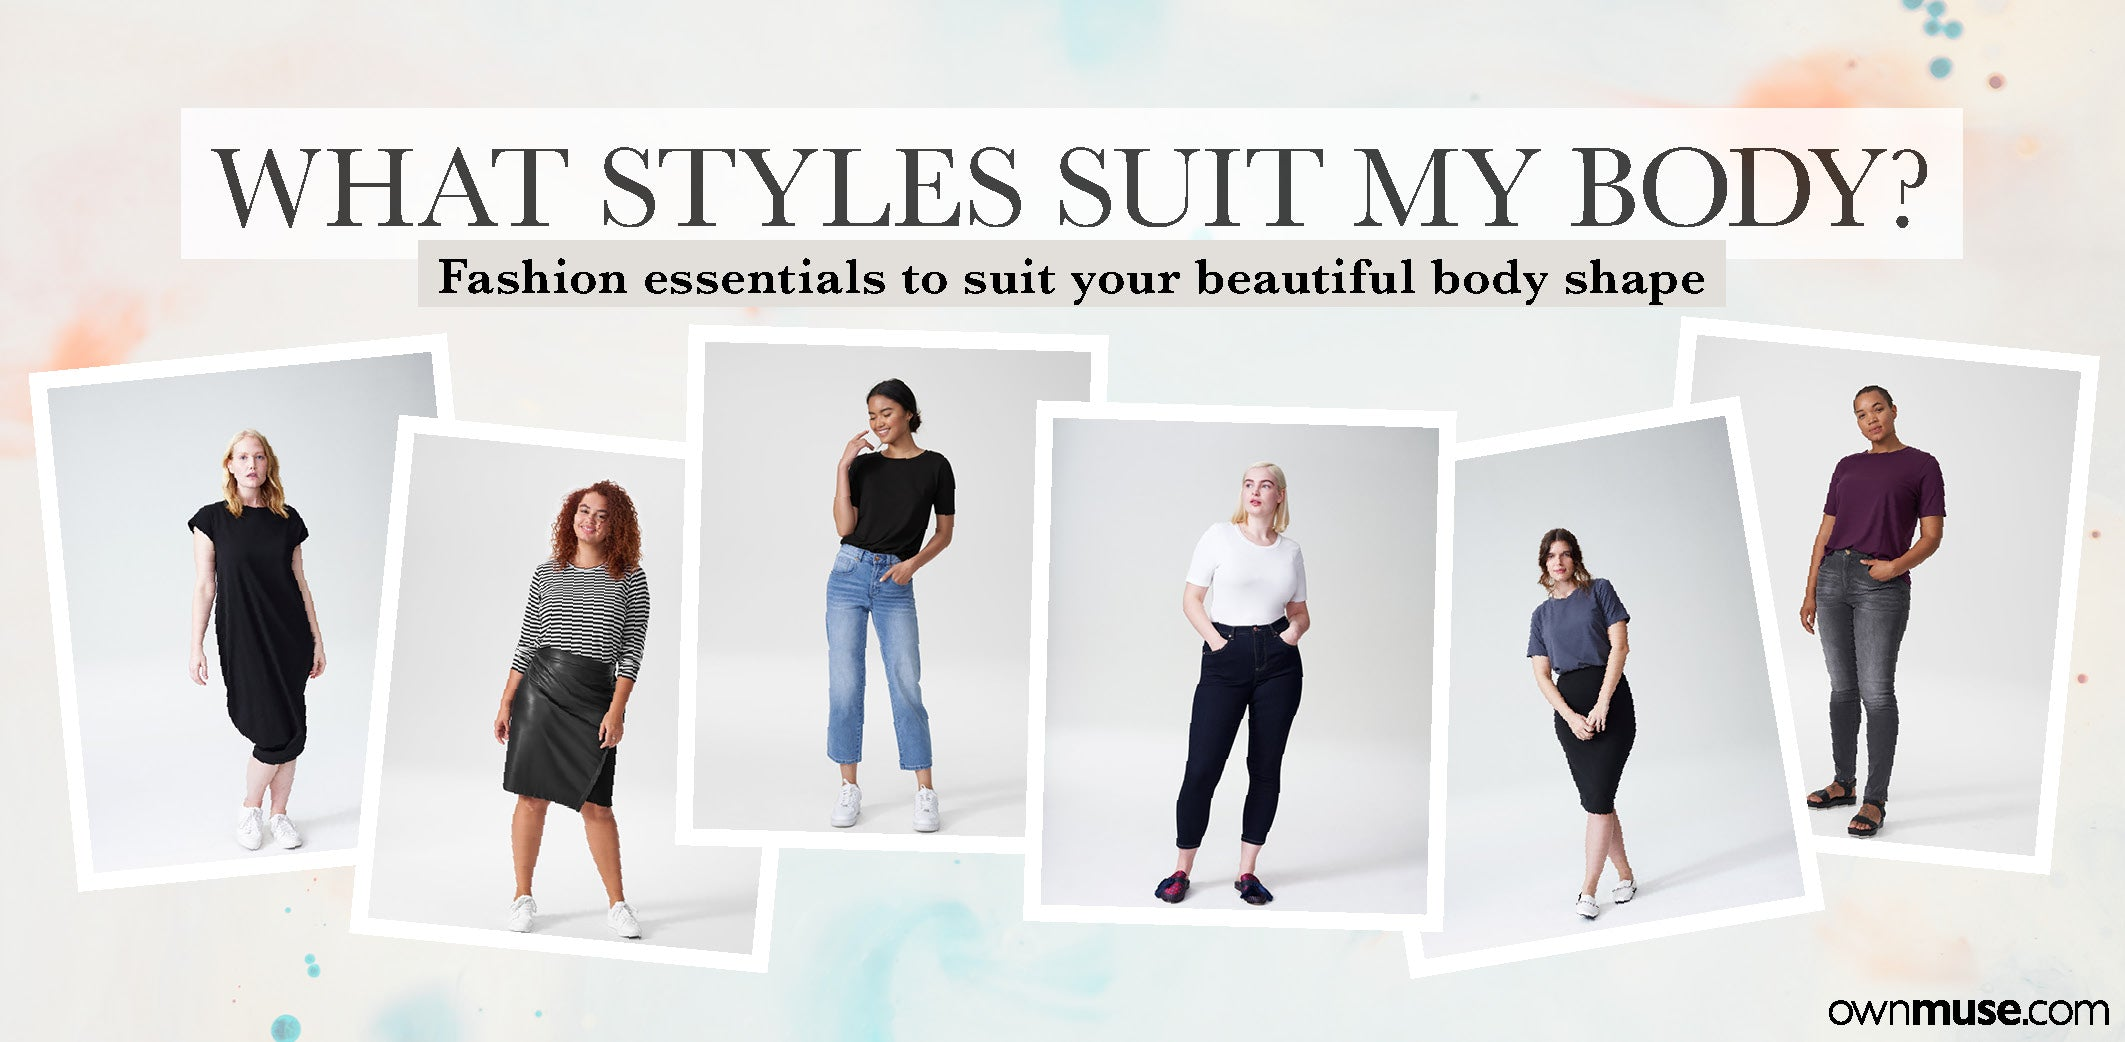 What styles suit my body? Fashion essentials to suit your beautiful body shape